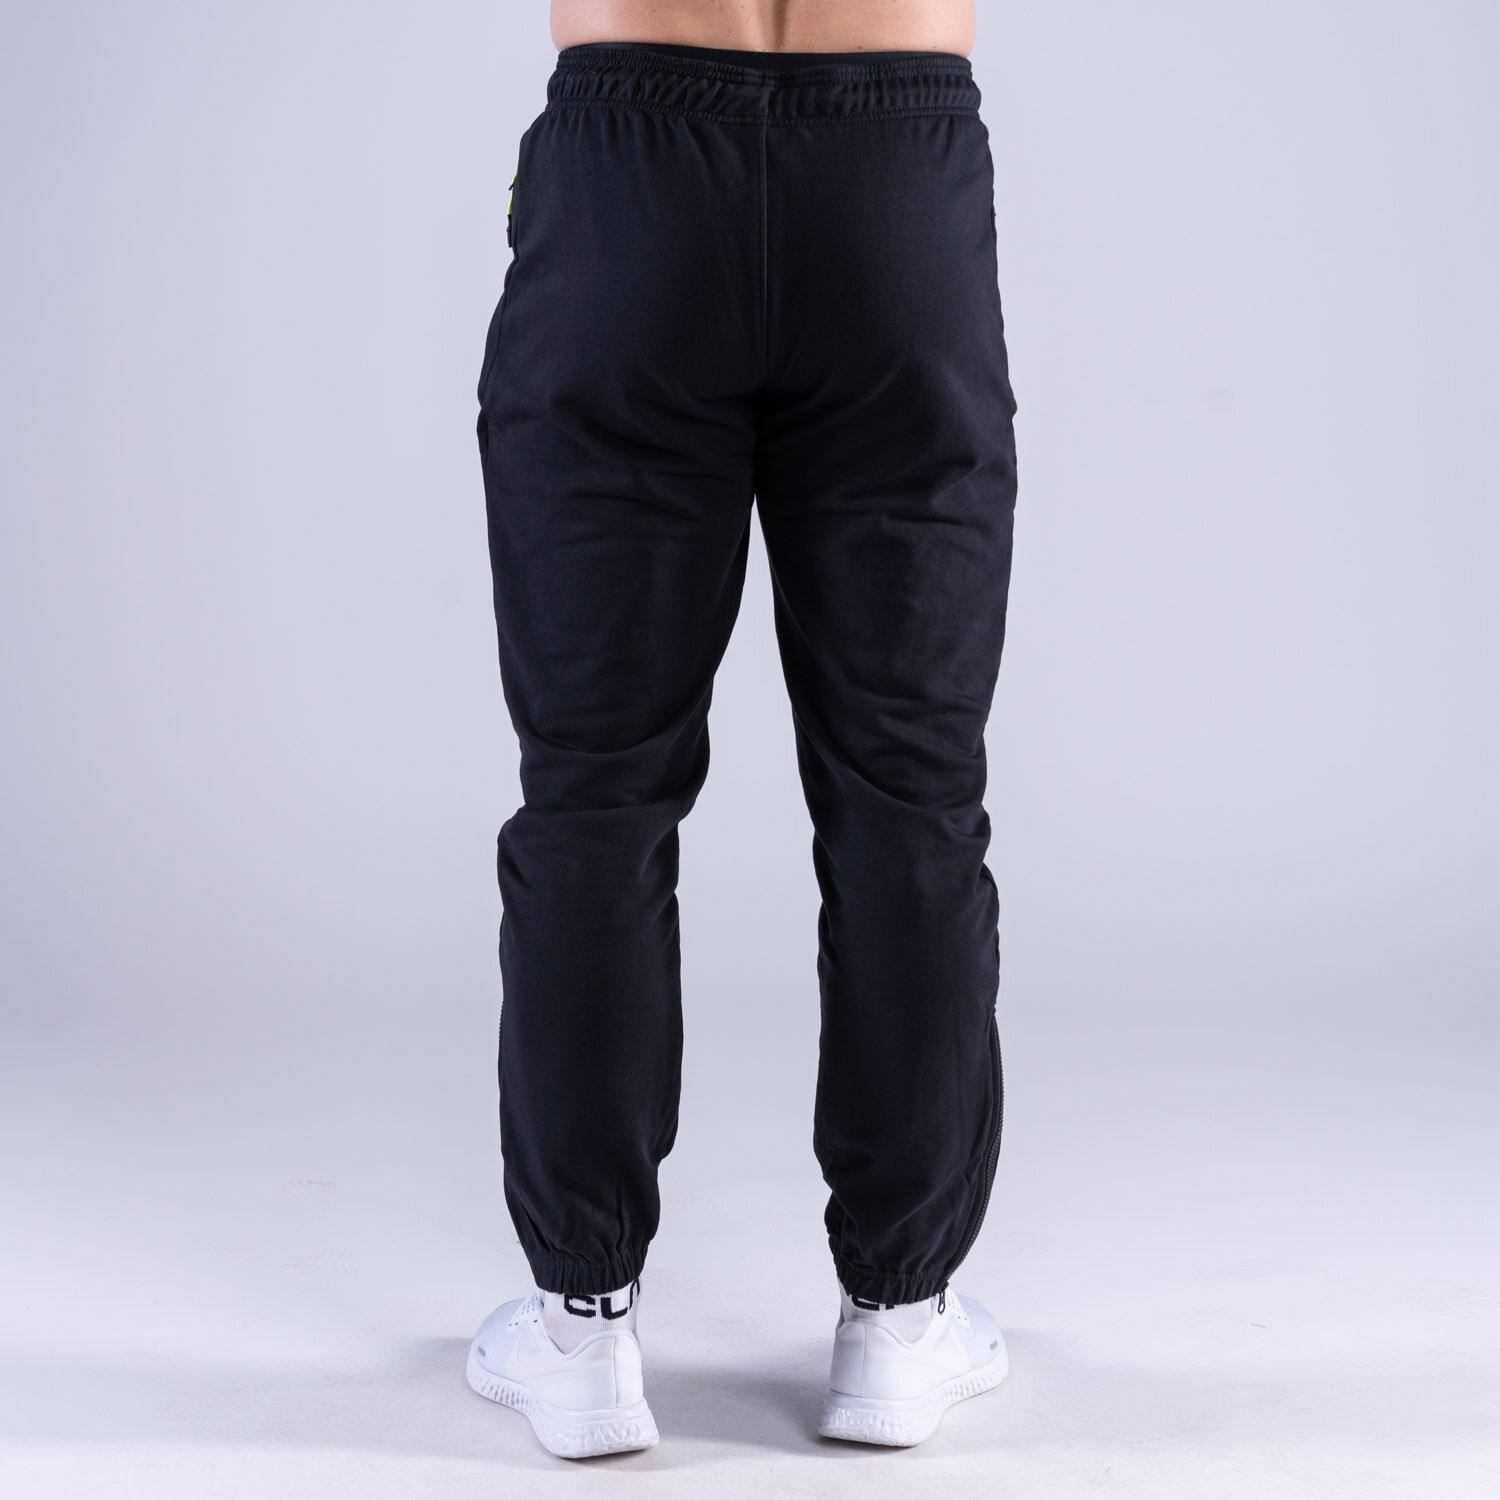 CLN Ghost pant Black